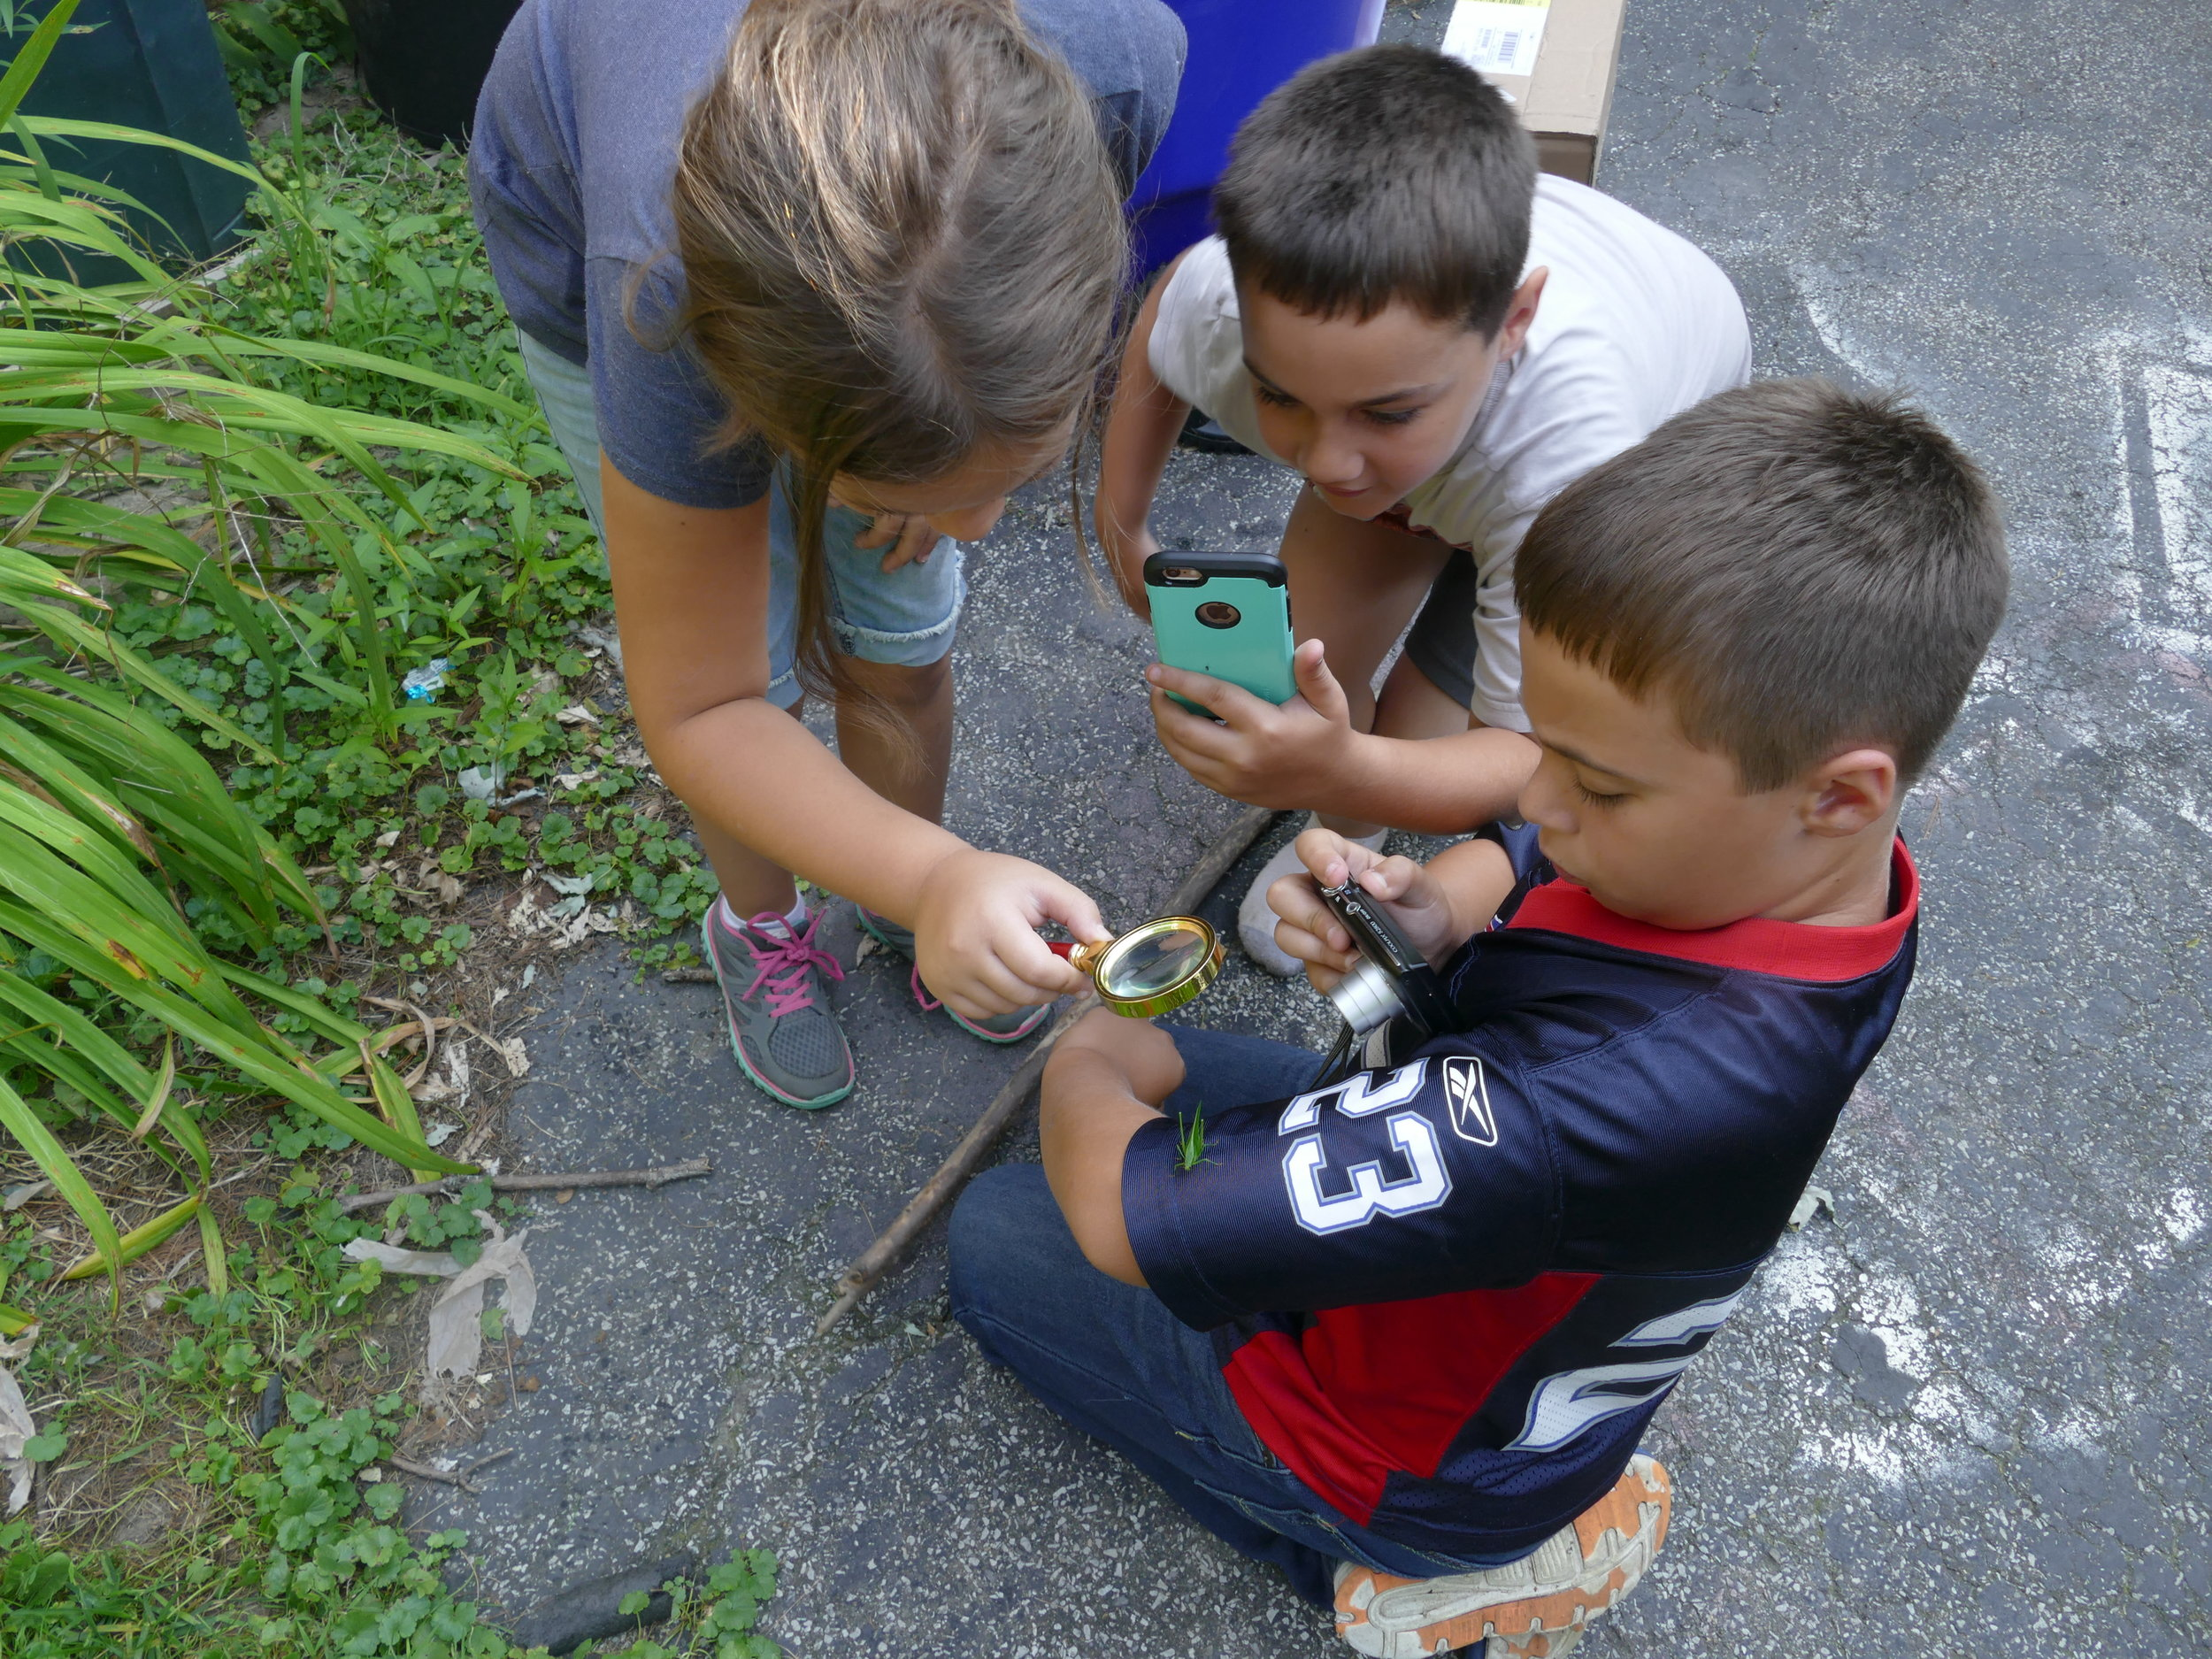 I was lucky enough to meet a wonderful family that welcomed me to their home for another type of advenure: finding bugs and playing in the backyard.